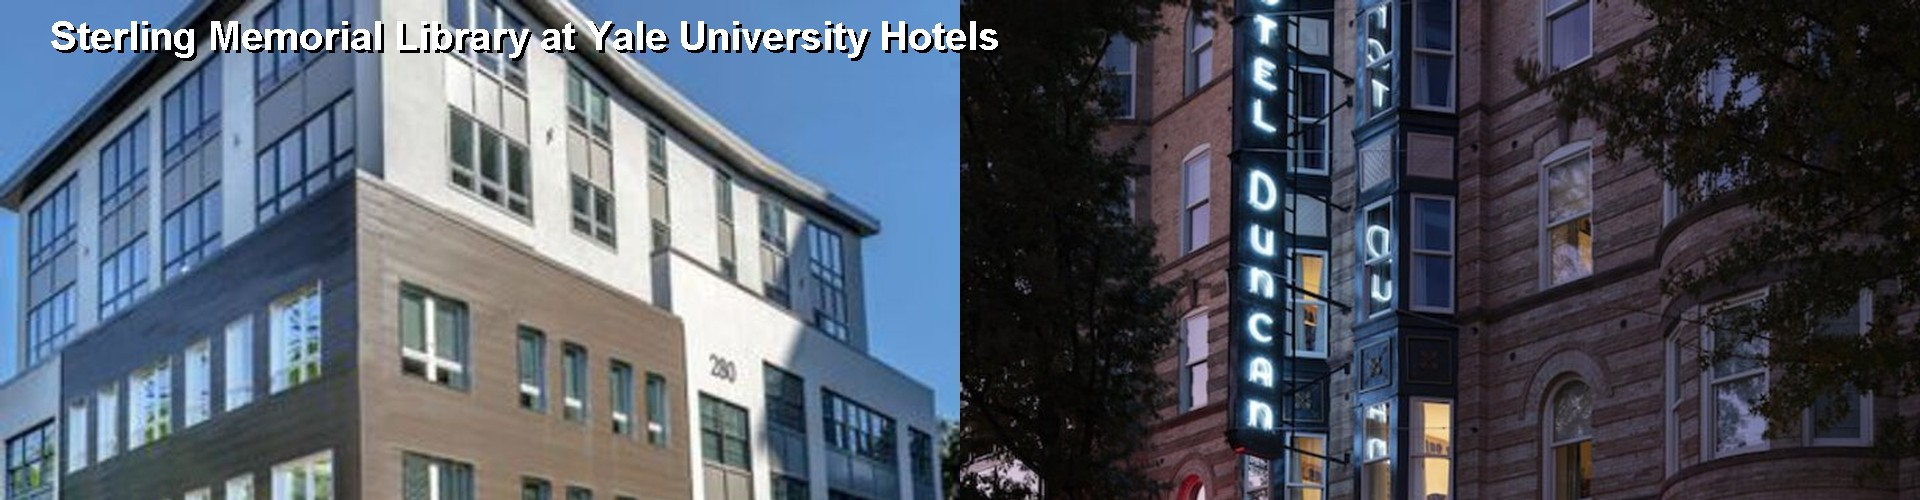 5 Best Hotels near Sterling Memorial Library at Yale University